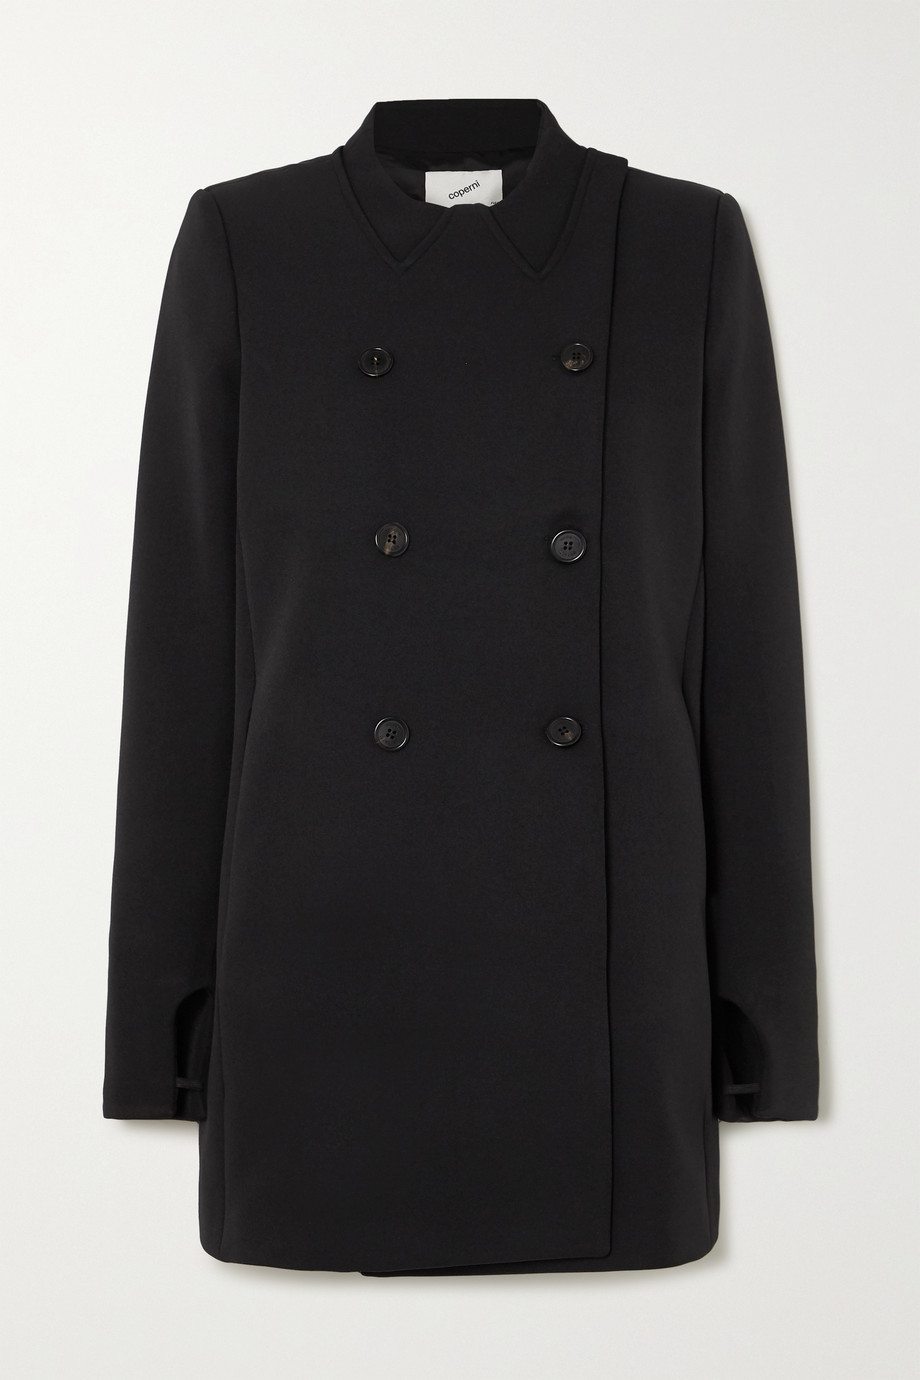 Coperni Double-breasted grain de poudre coat